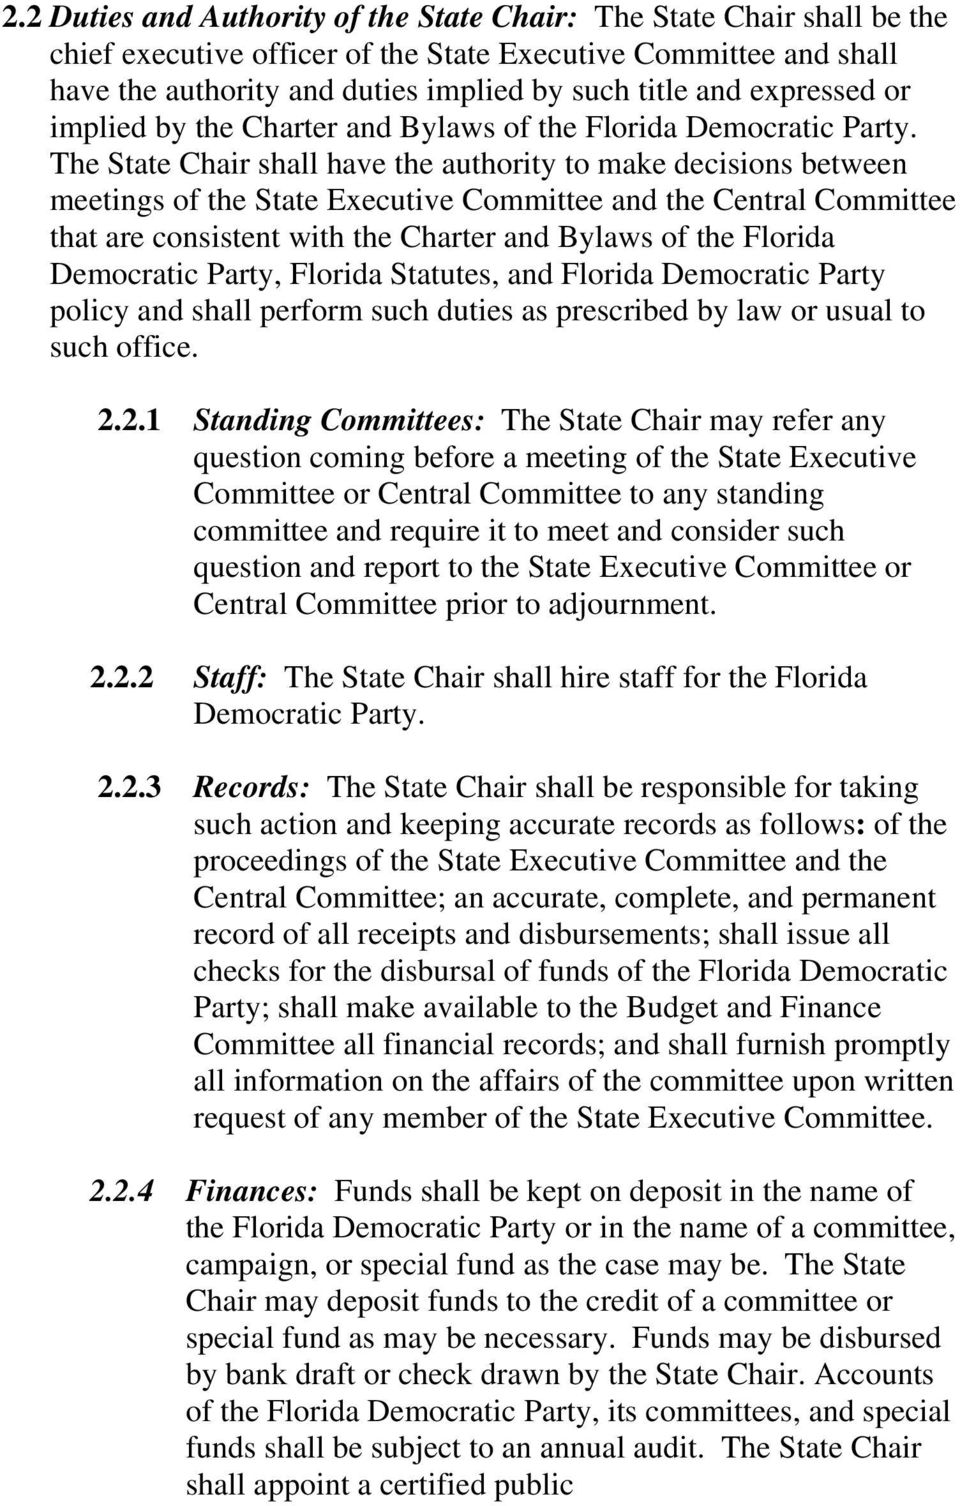 The State Chair shall have the authority to make decisions between meetings of the State Executive Committee and the Central Committee that are consistent with the Charter and Bylaws of the Florida